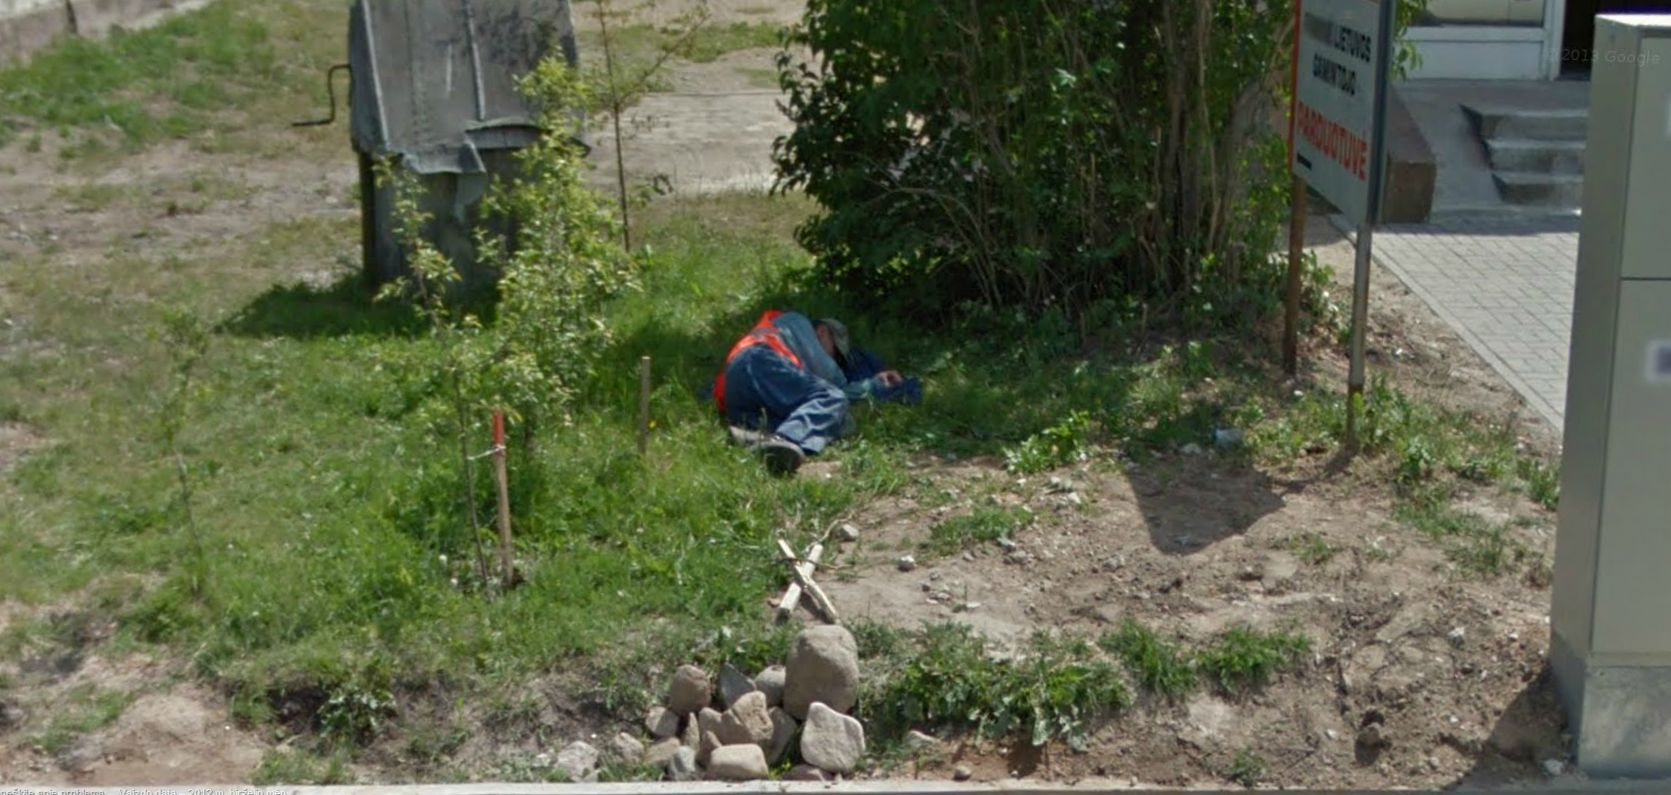 Nap time in Lithuania